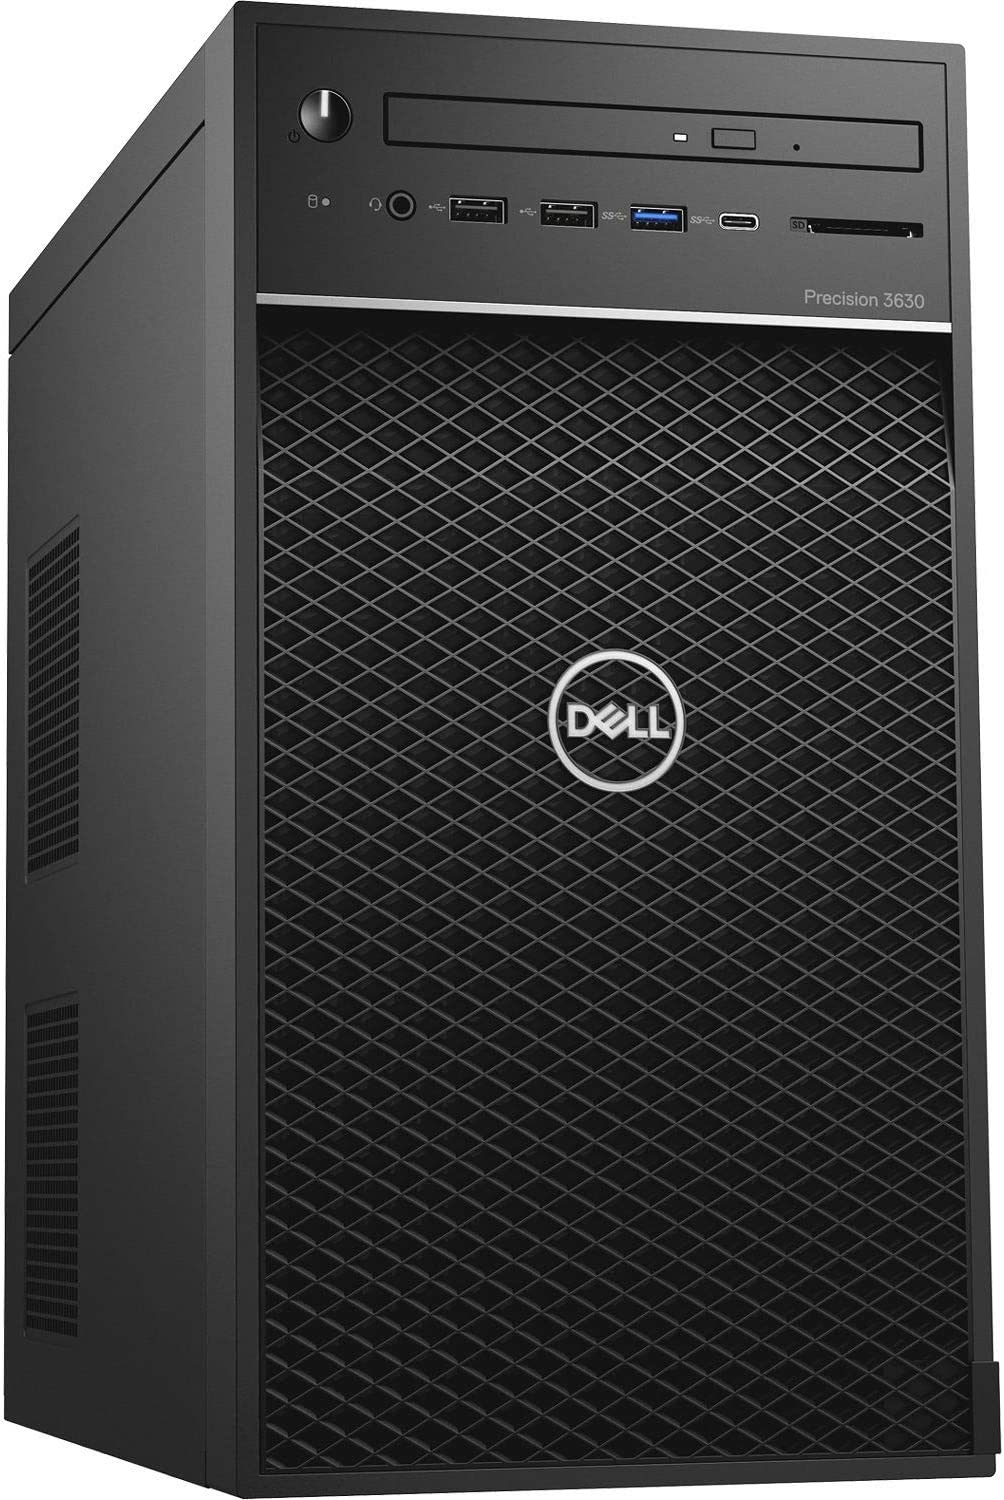 Dell Precision 3630 Workstation Intel 8th Gen i7-8700K 3.7GHz (Up to 4.70GHz) 6-Core CPU 16GB DDR4-2666MHz Memory 512GB NVMe PCIe SSD 1TB 7200RPM SATA HDD Windows 10 Pro